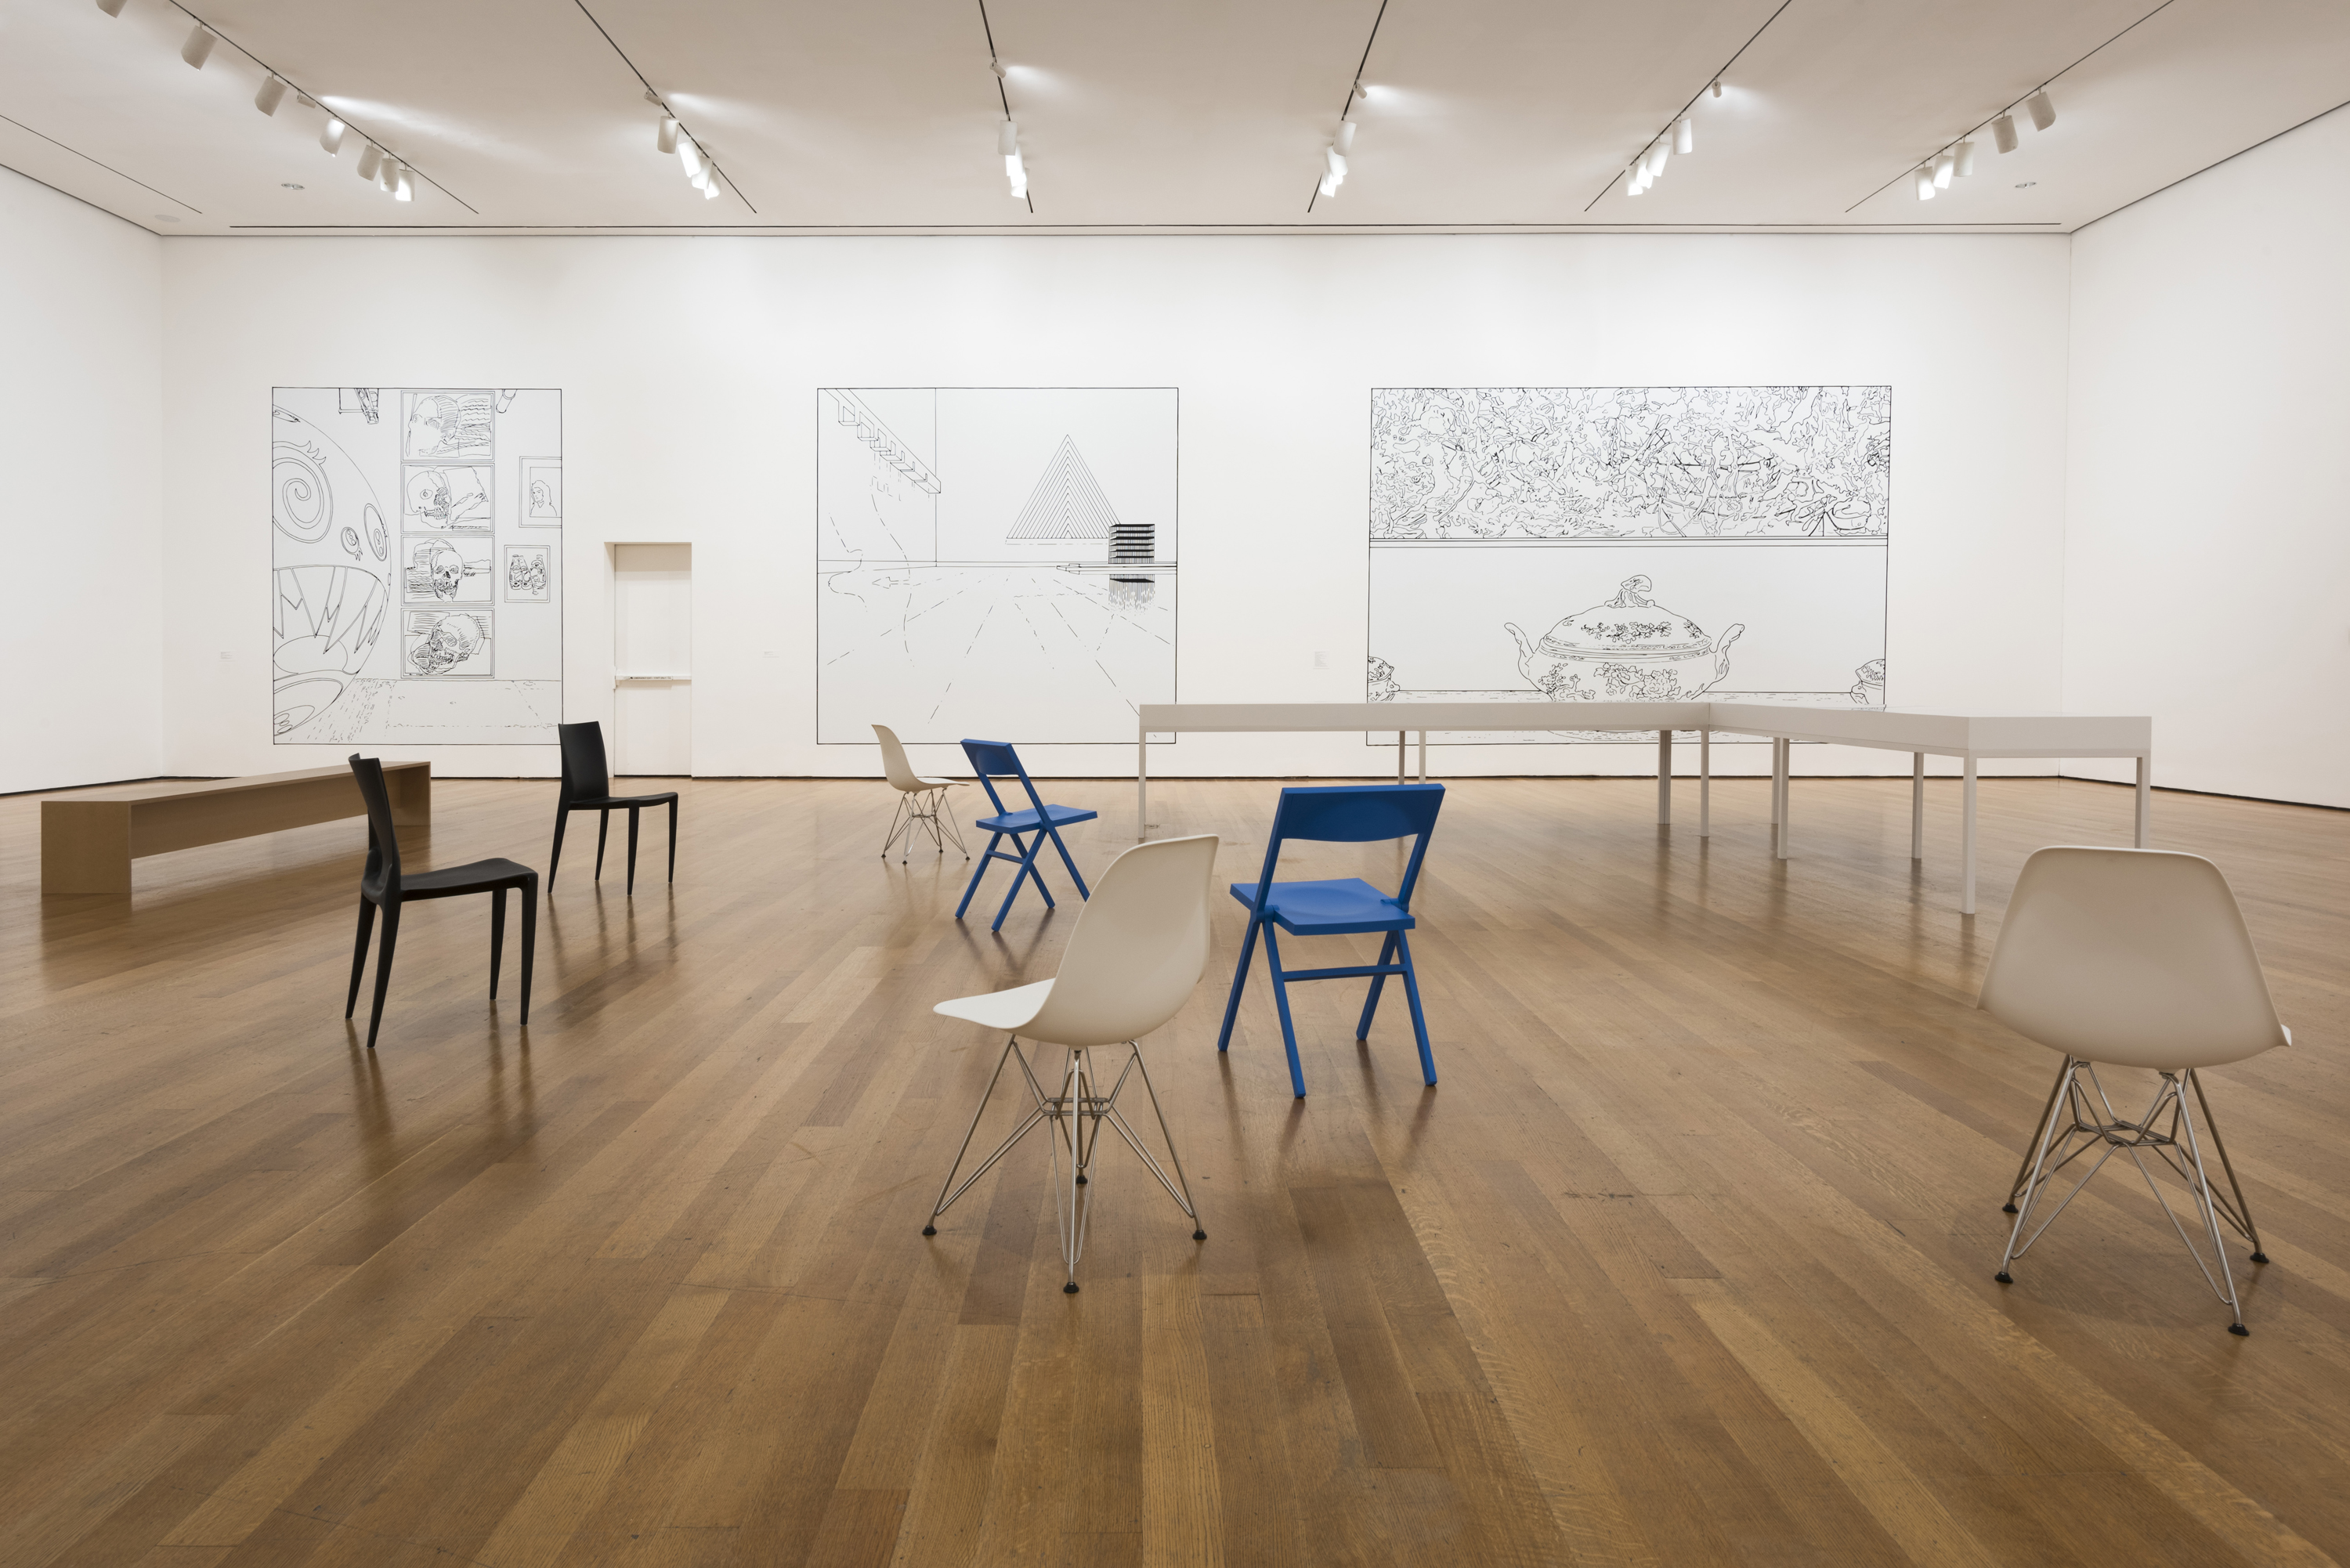 Installation view ofLouise Lawler: WHY PICTURES NOW.The Museum of Modern Art, New York, April 30-July 30, 2017. © 2017 The Museum of Modern Art. Photo: Martin Seck.